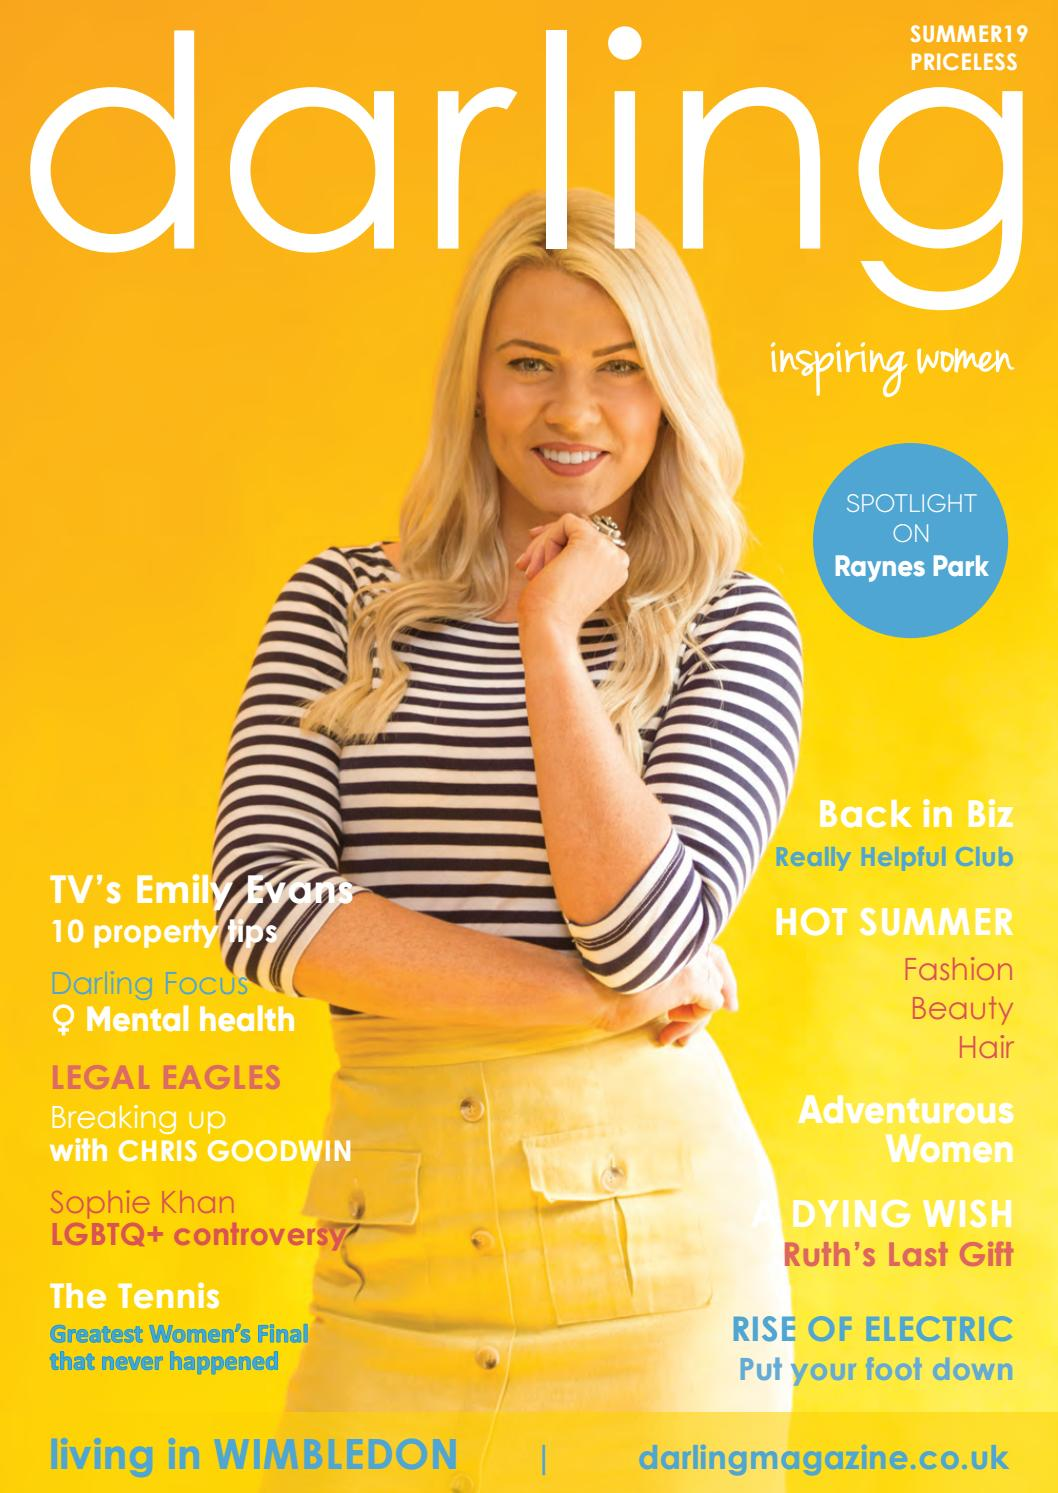 78bc1fba105ed Darling Magazine Wimbledon Summer 2019 by darling magazine - issuu